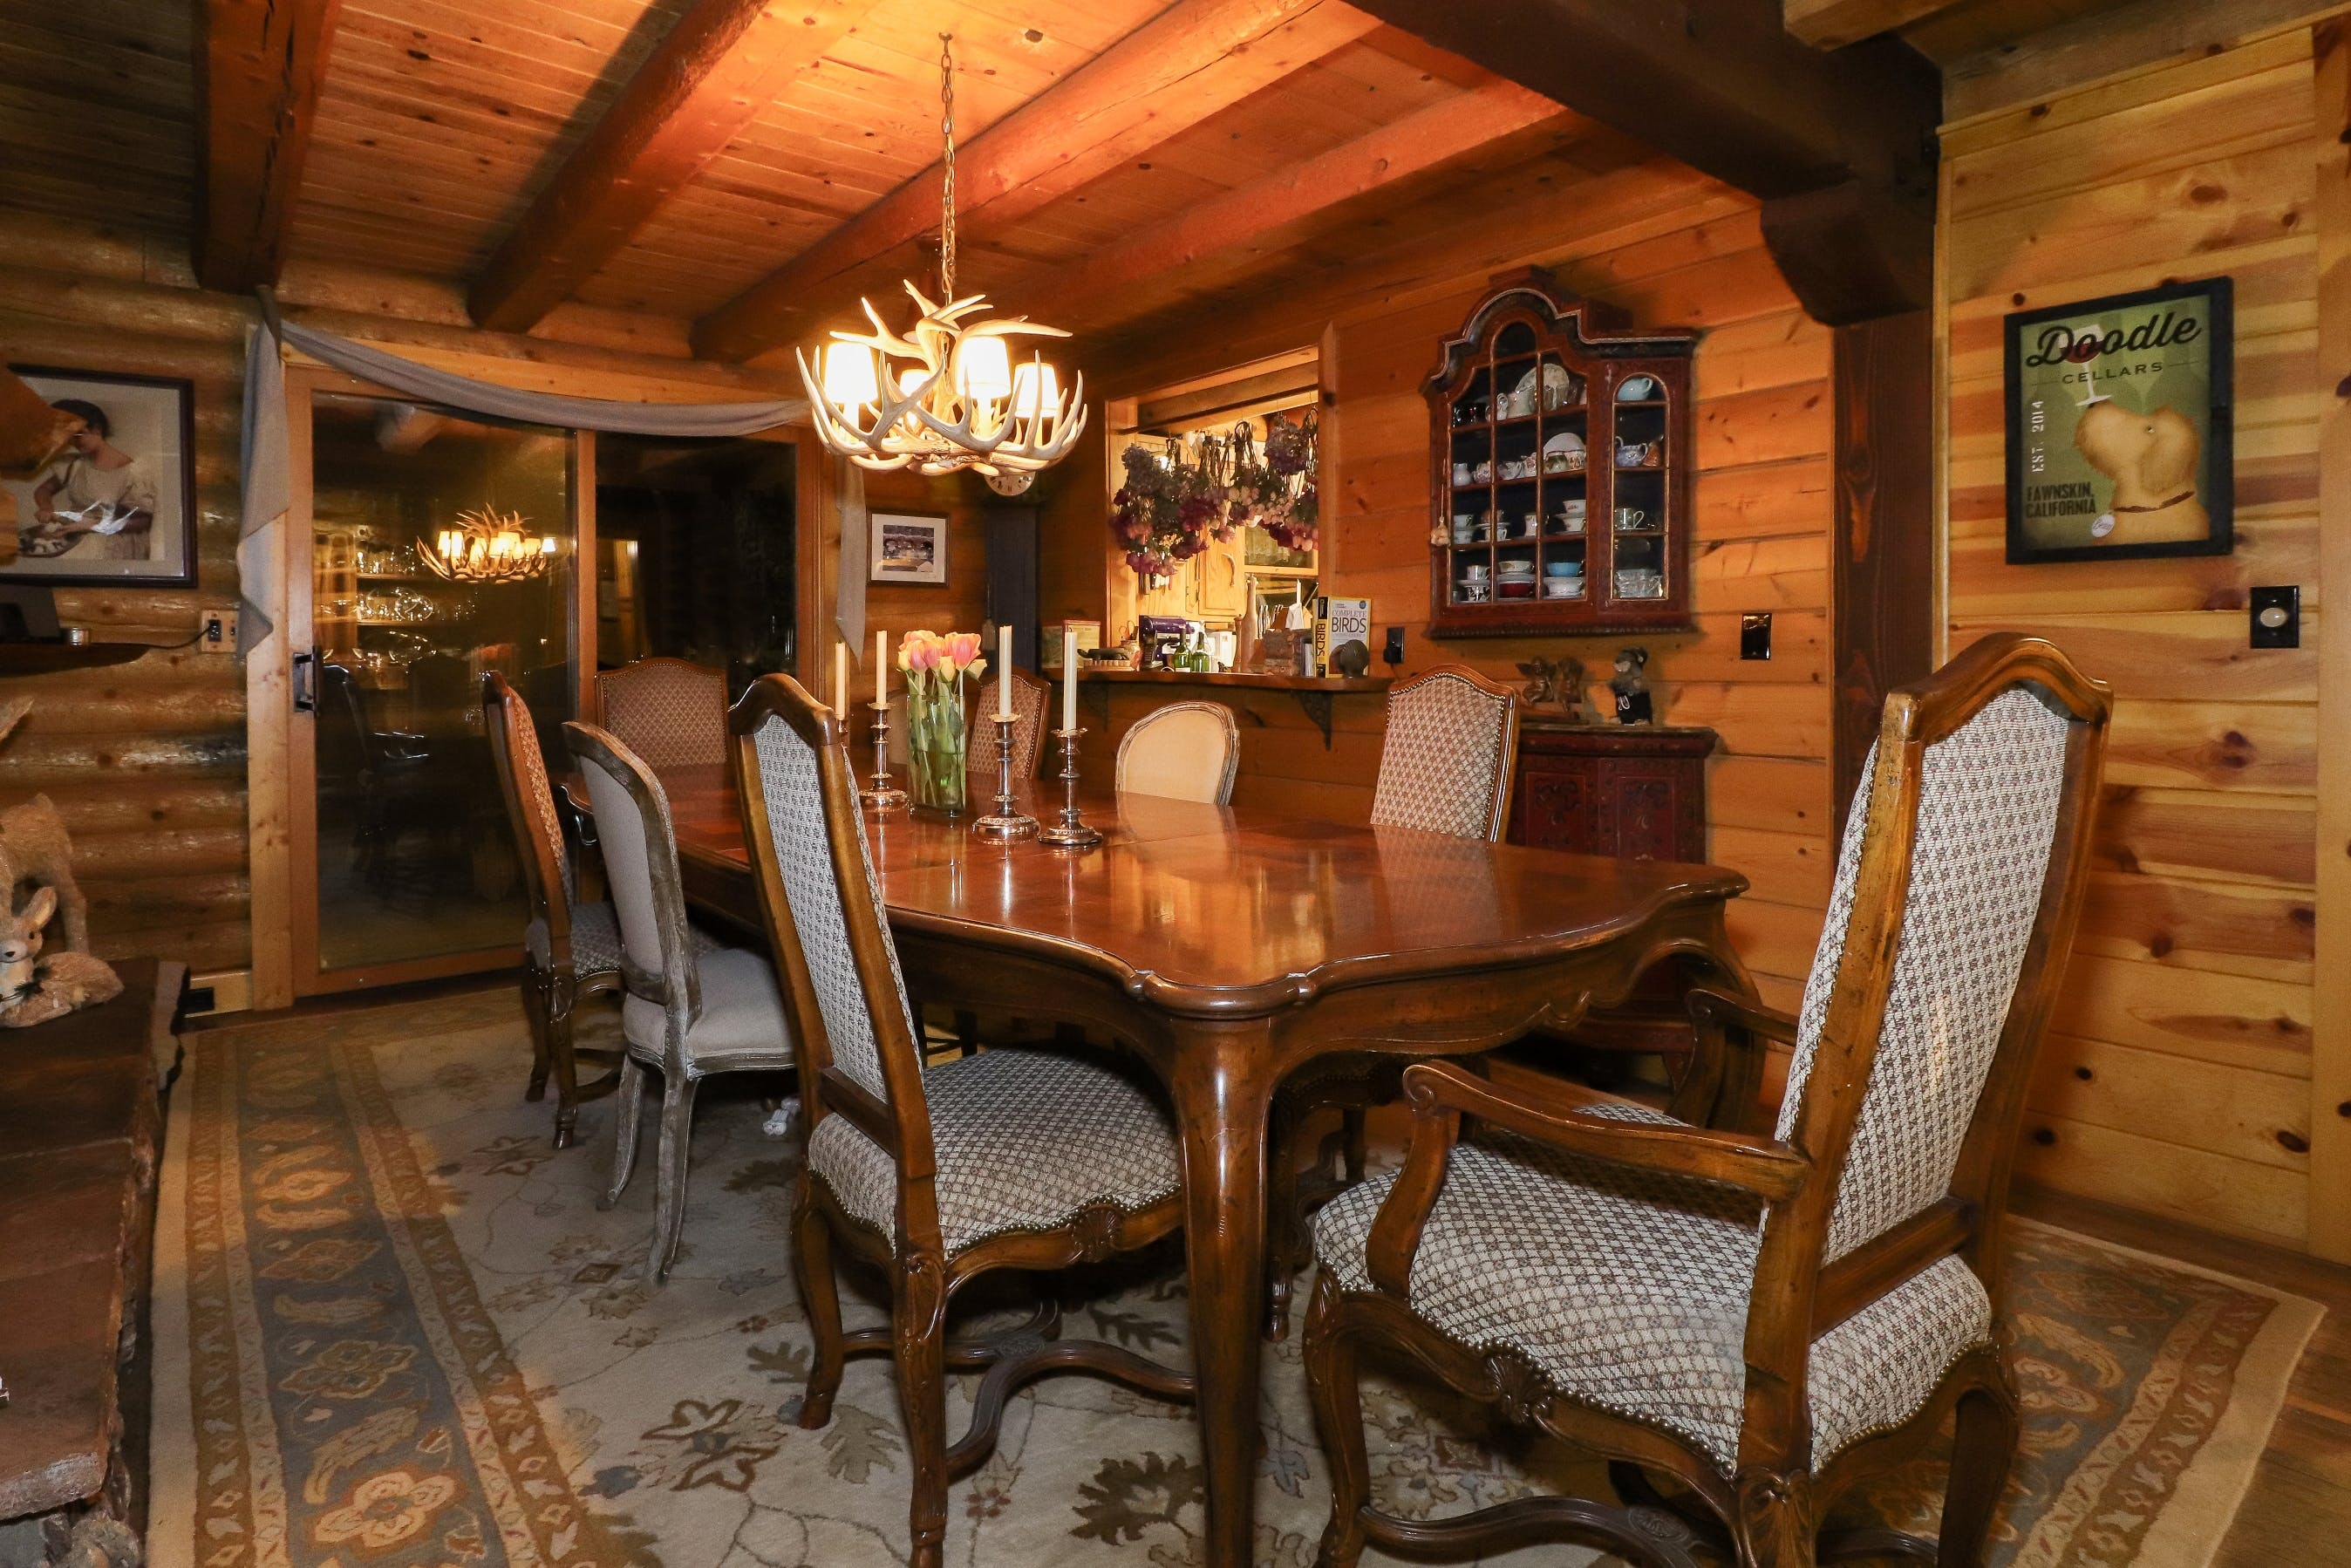 Log home B&B with beautiful dining room & full gourmet breakfast